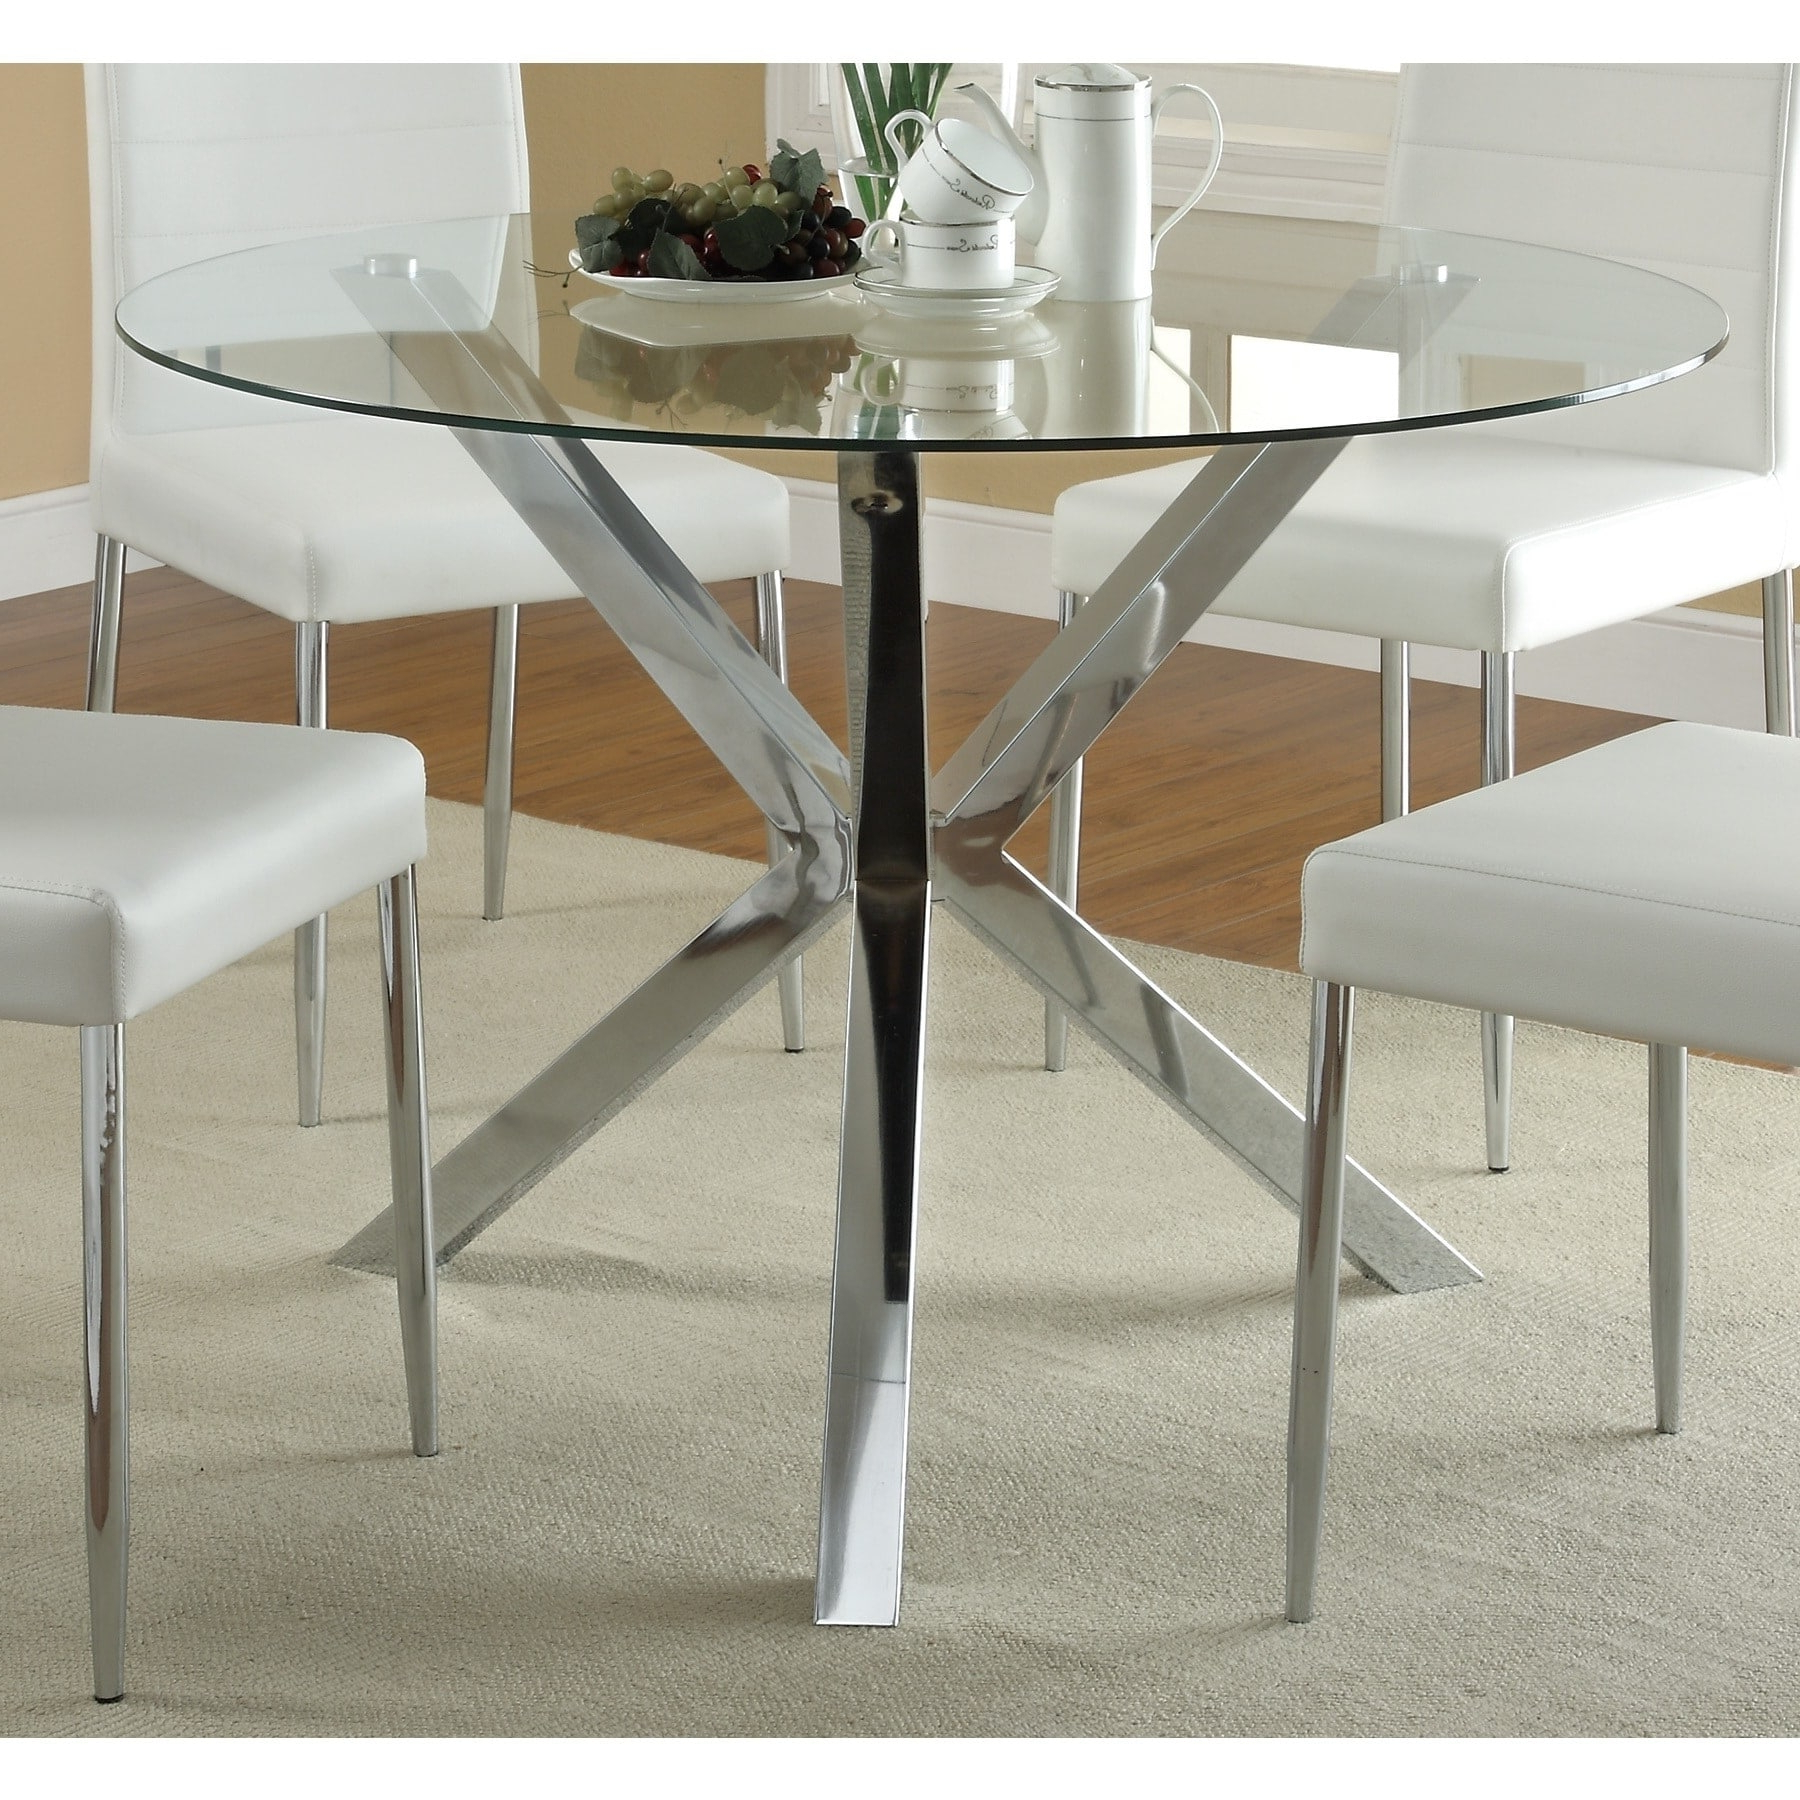 Coaster Vance Contemporary Glass Top Round Dining Table In With Fashionable Round Glass Top Dining Tables (View 4 of 25)